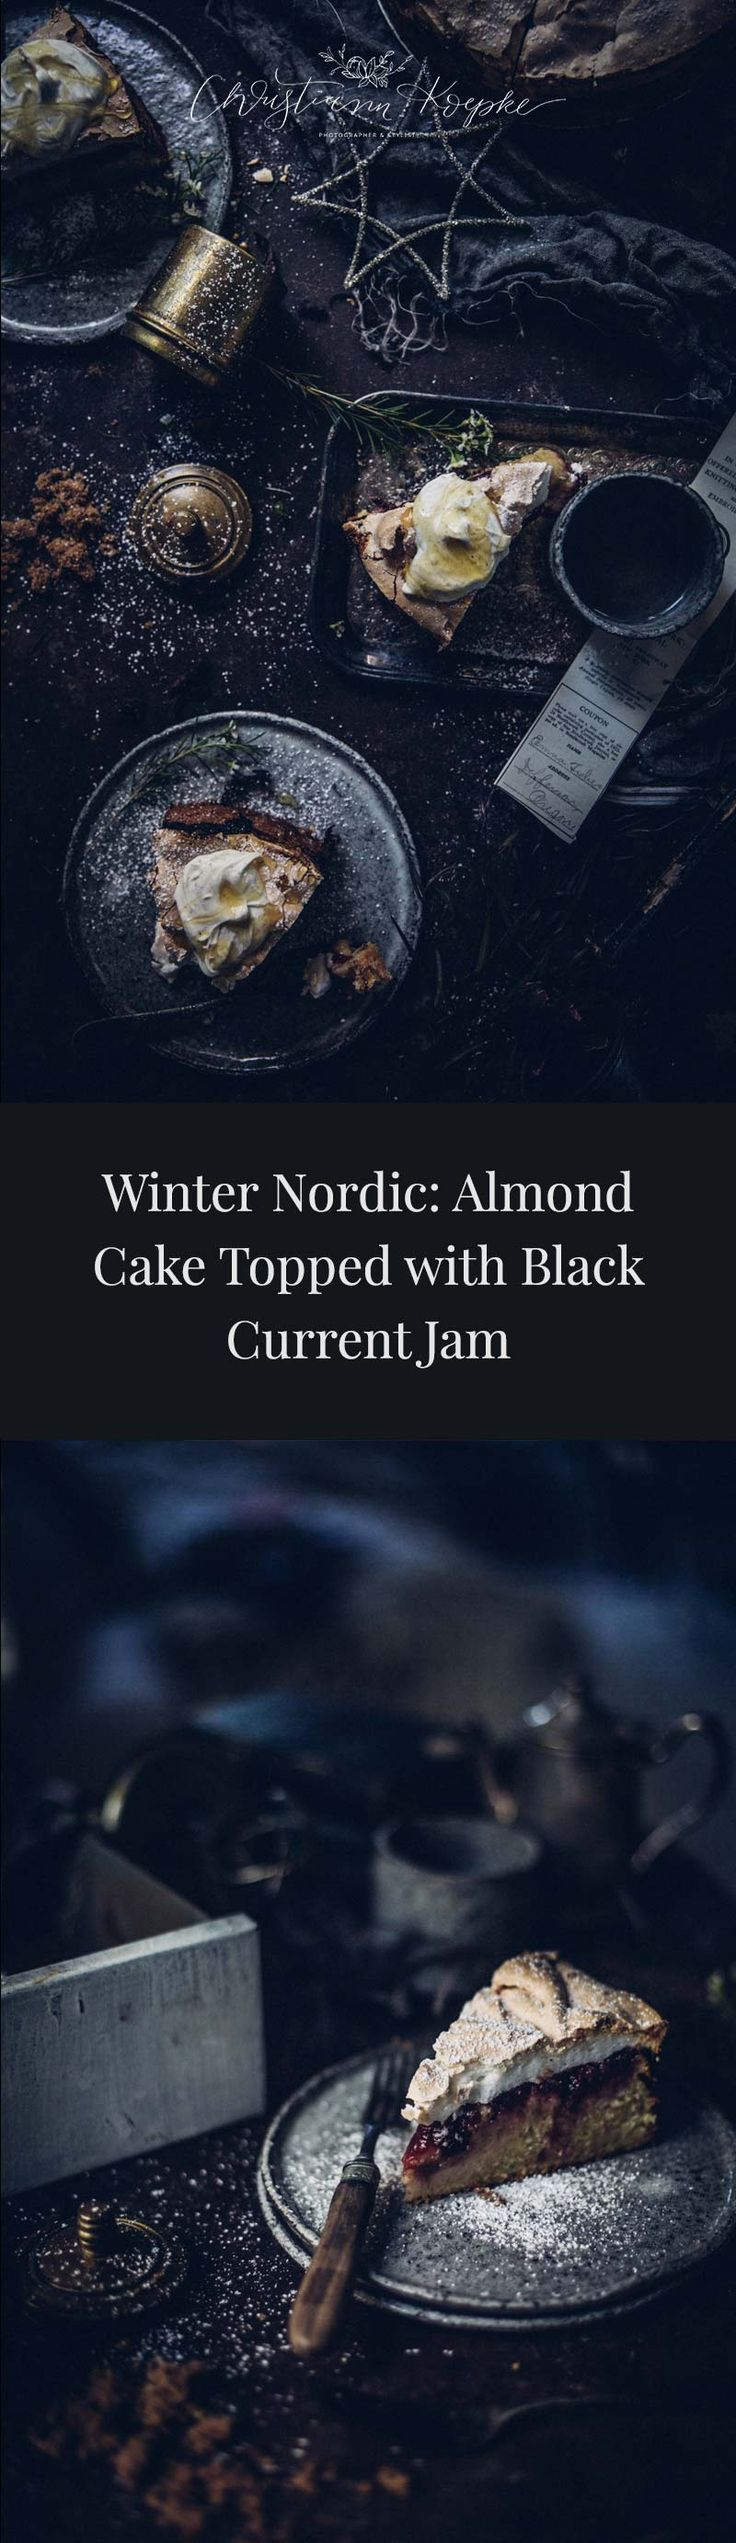 Winter Nordic: Almond Cake Topped with Black Current Jam | Christiann Koepke